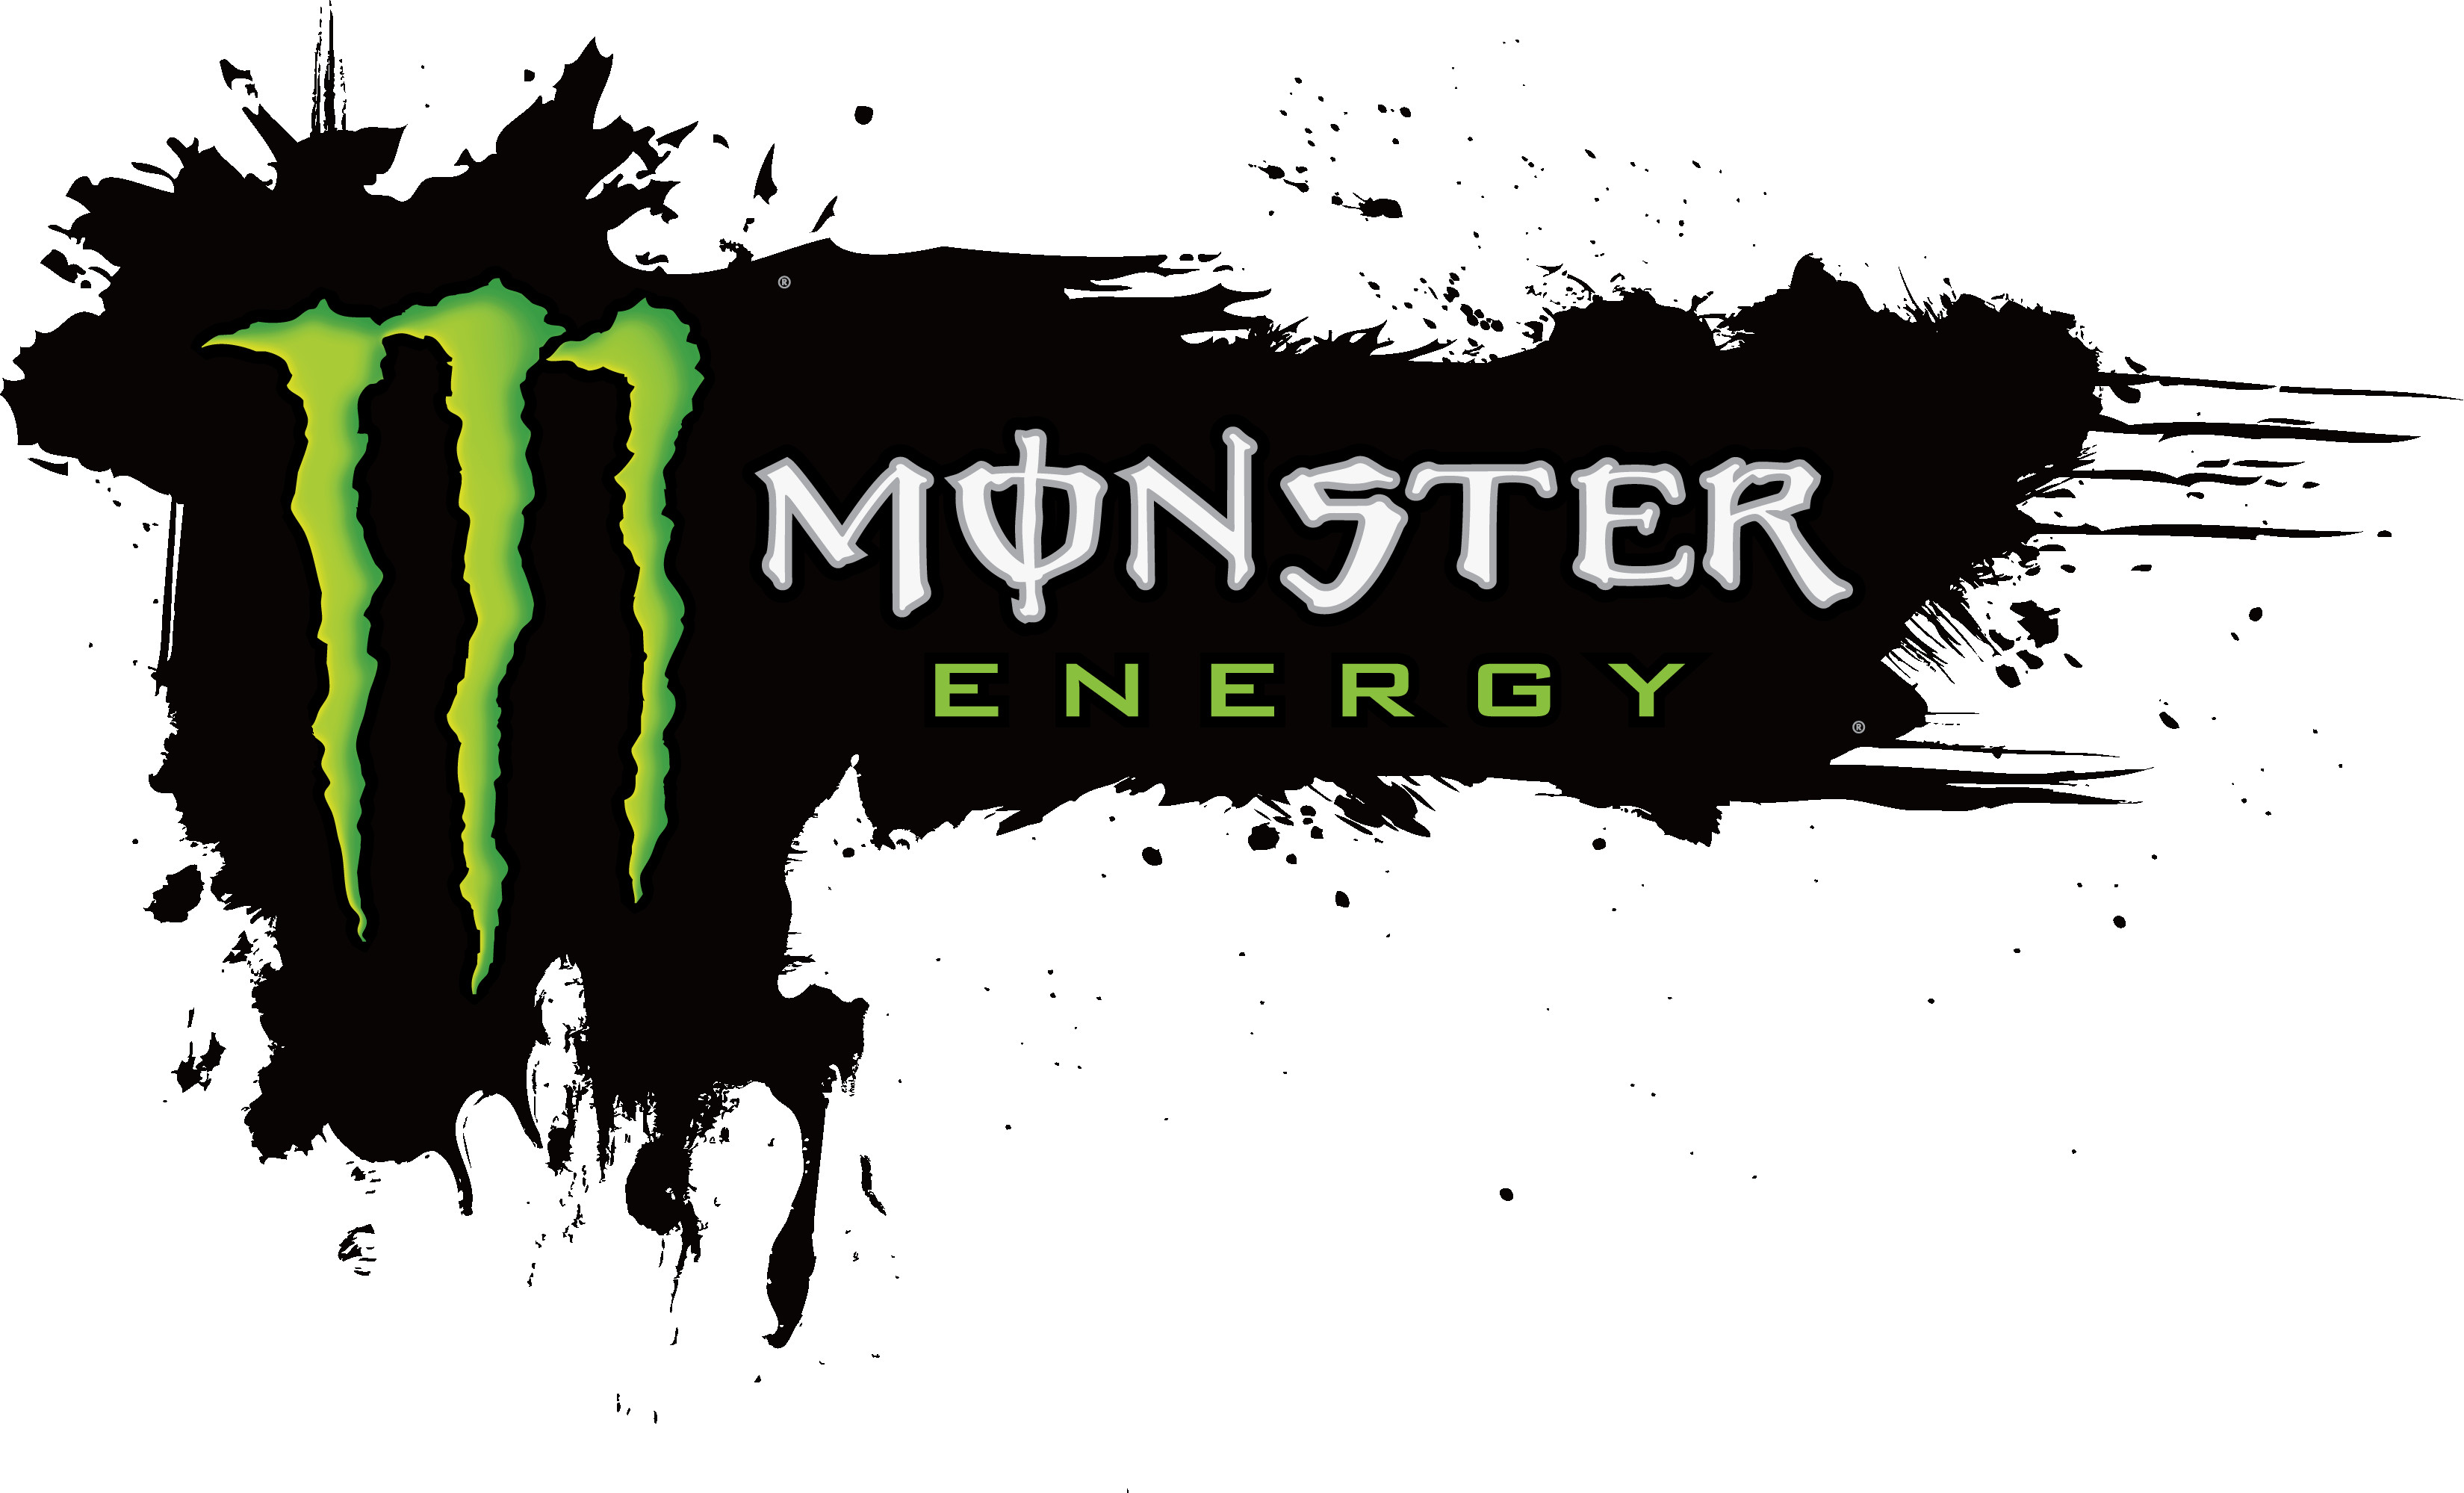 Amazing Wallpapers For Desktop Hd Free Download Monster Energy Drink Logo Wallpaper 66 Images